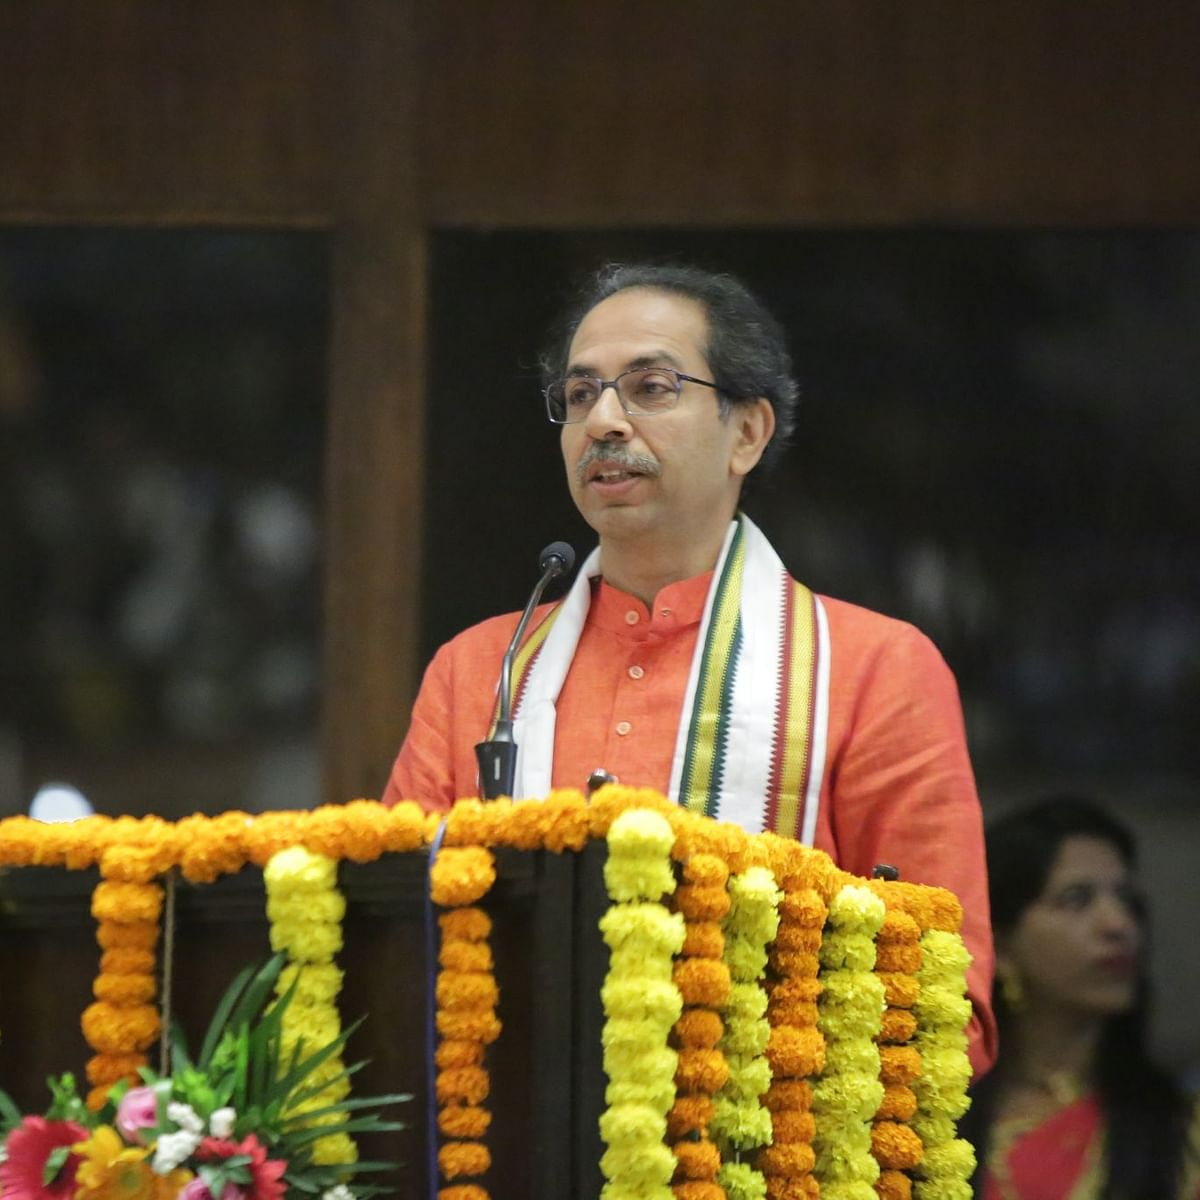 Maharashtra CM Uddhav Thackeray cautions people to stay indoors or be ready for stricter curbs